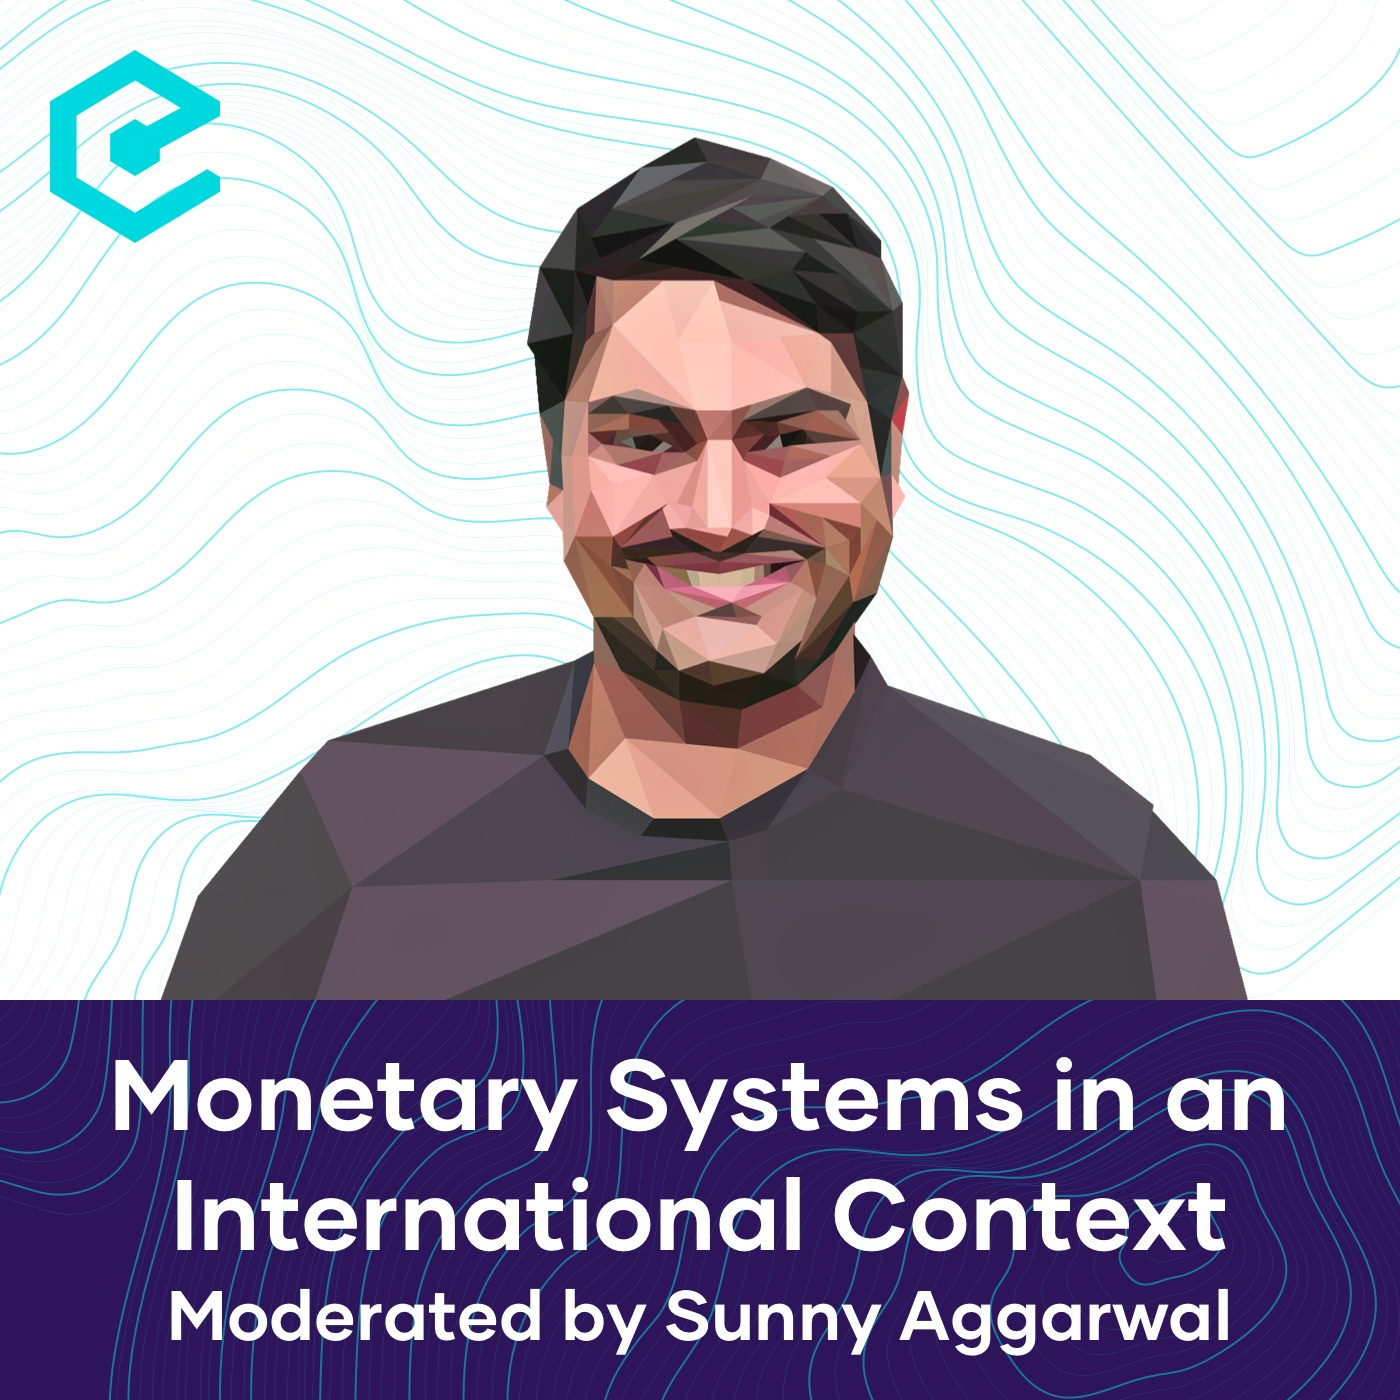 Monetary Systems in an International Context